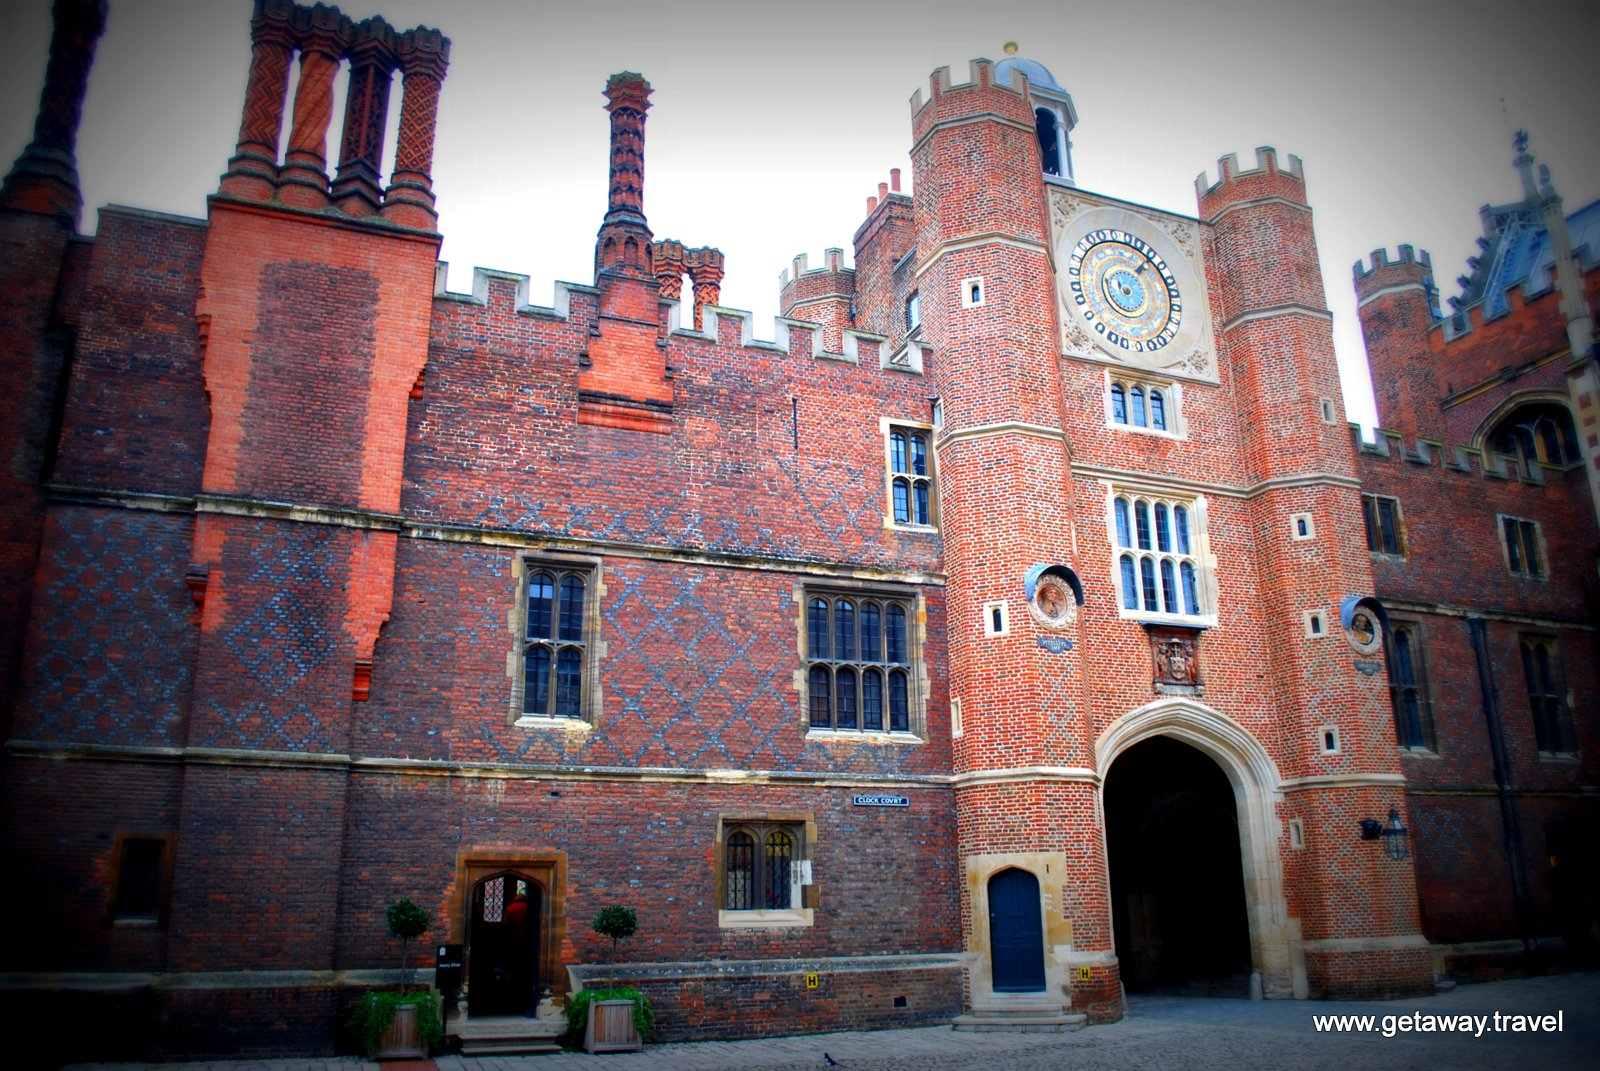 13-Hampton Court Palace 5-3-2012 9-37-25 AM